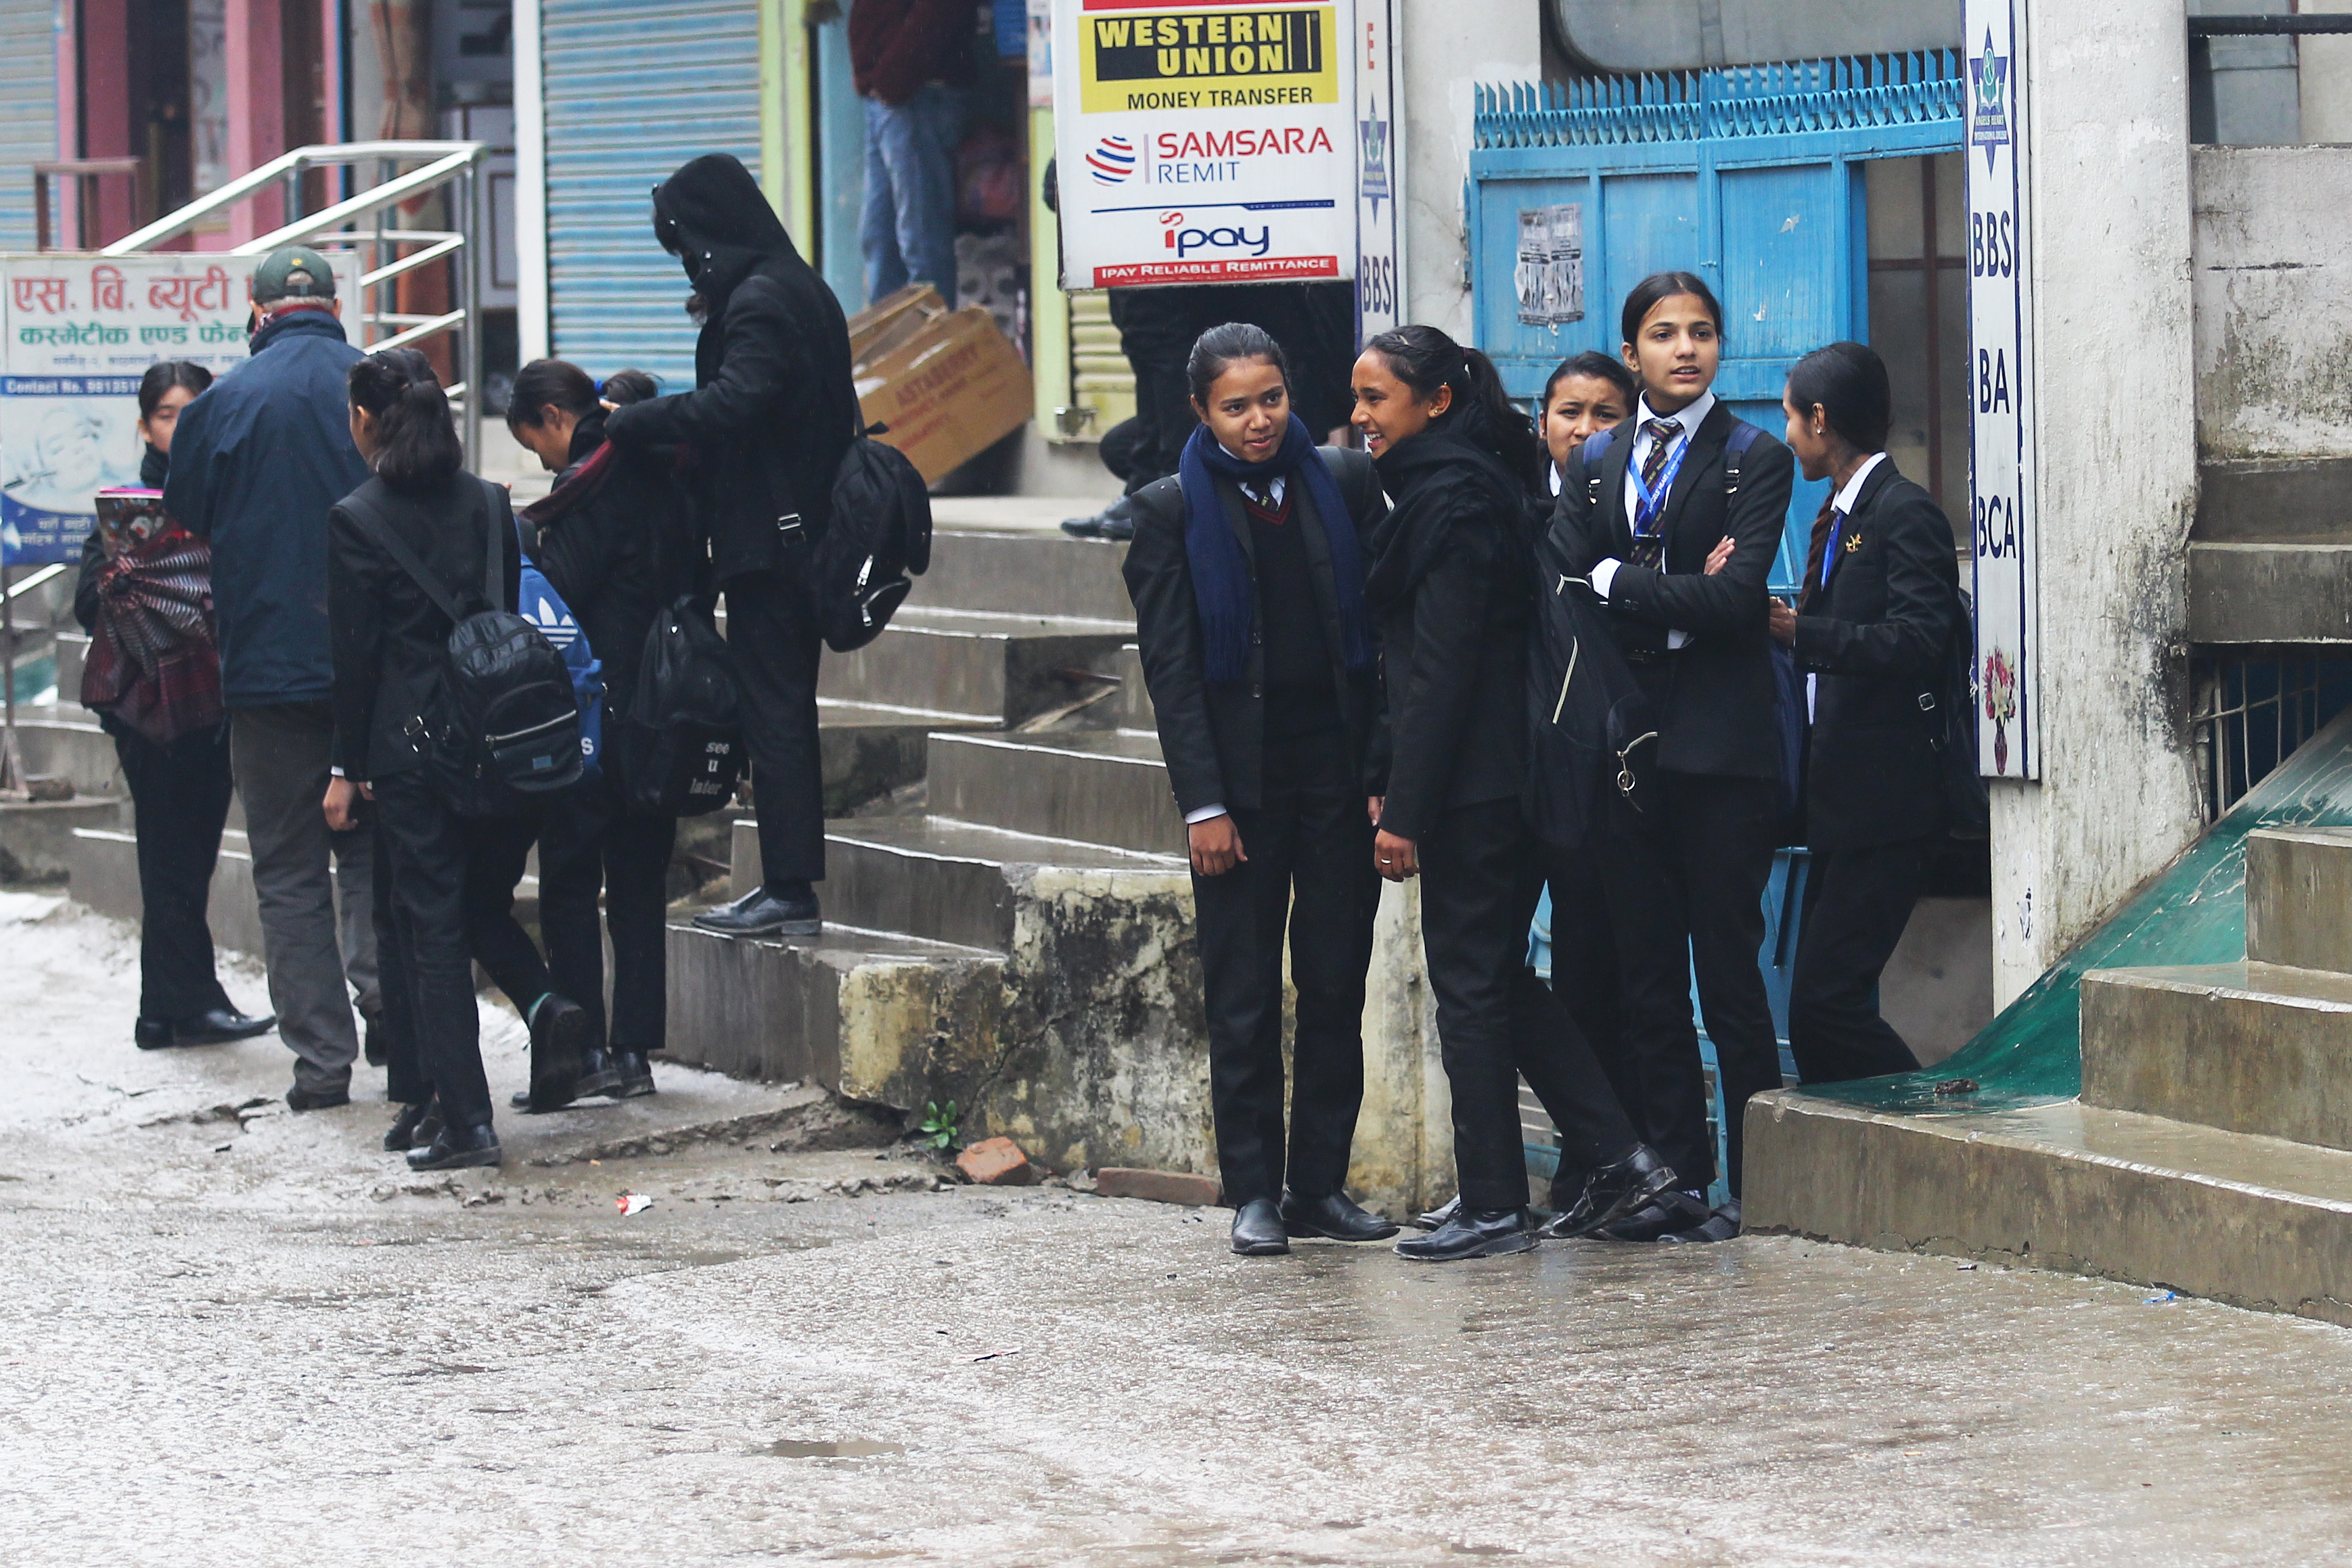 http://assets-cdn.ekantipur.com/images/the-kathmandu-post/miscellaneous/IMG_8353_Student_returns_from_school__KTM0602198-08022019082936.JPG